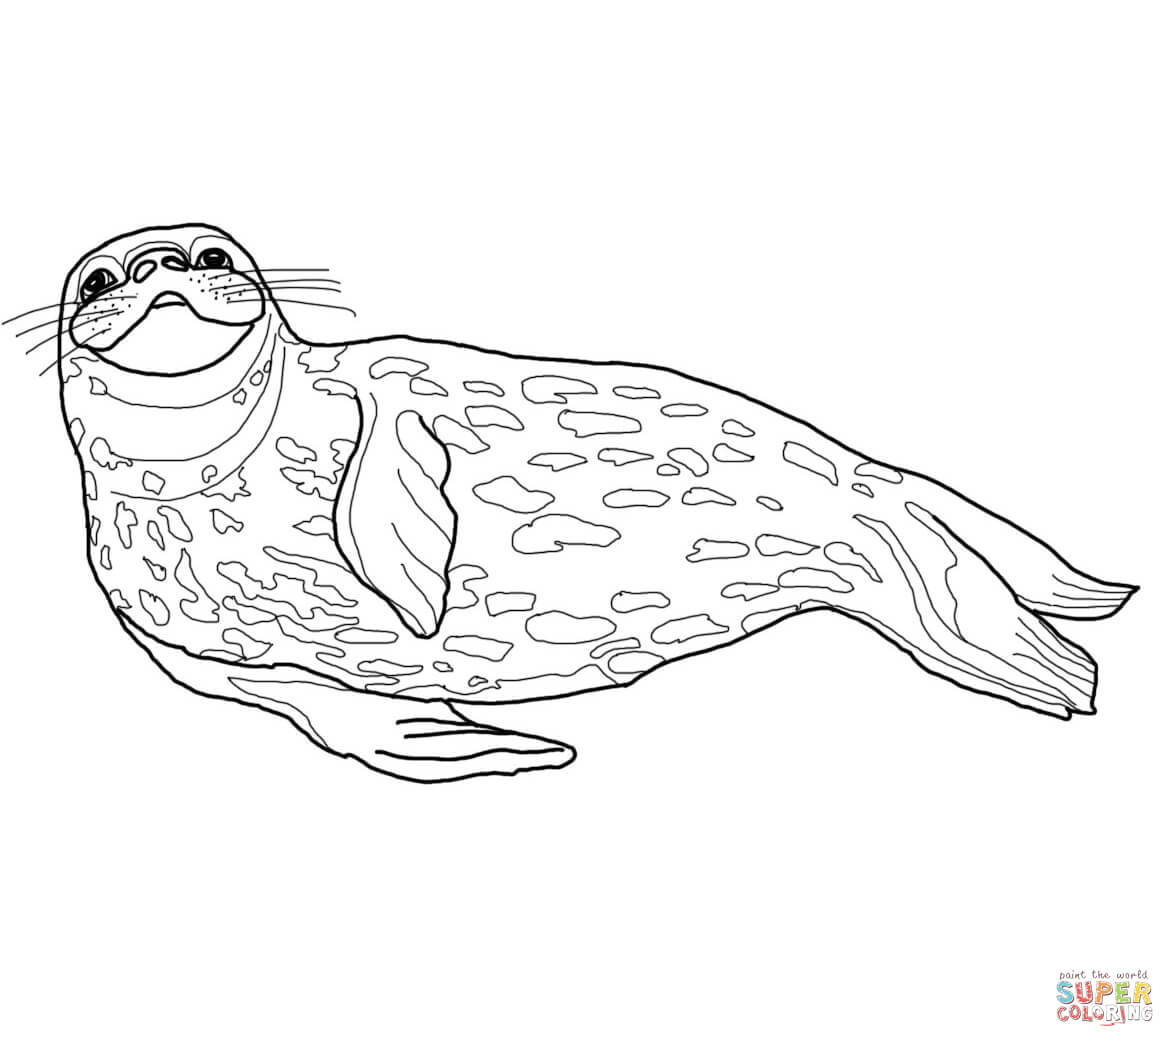 Weddell Seal coloring page | Free Printable Coloring Pages